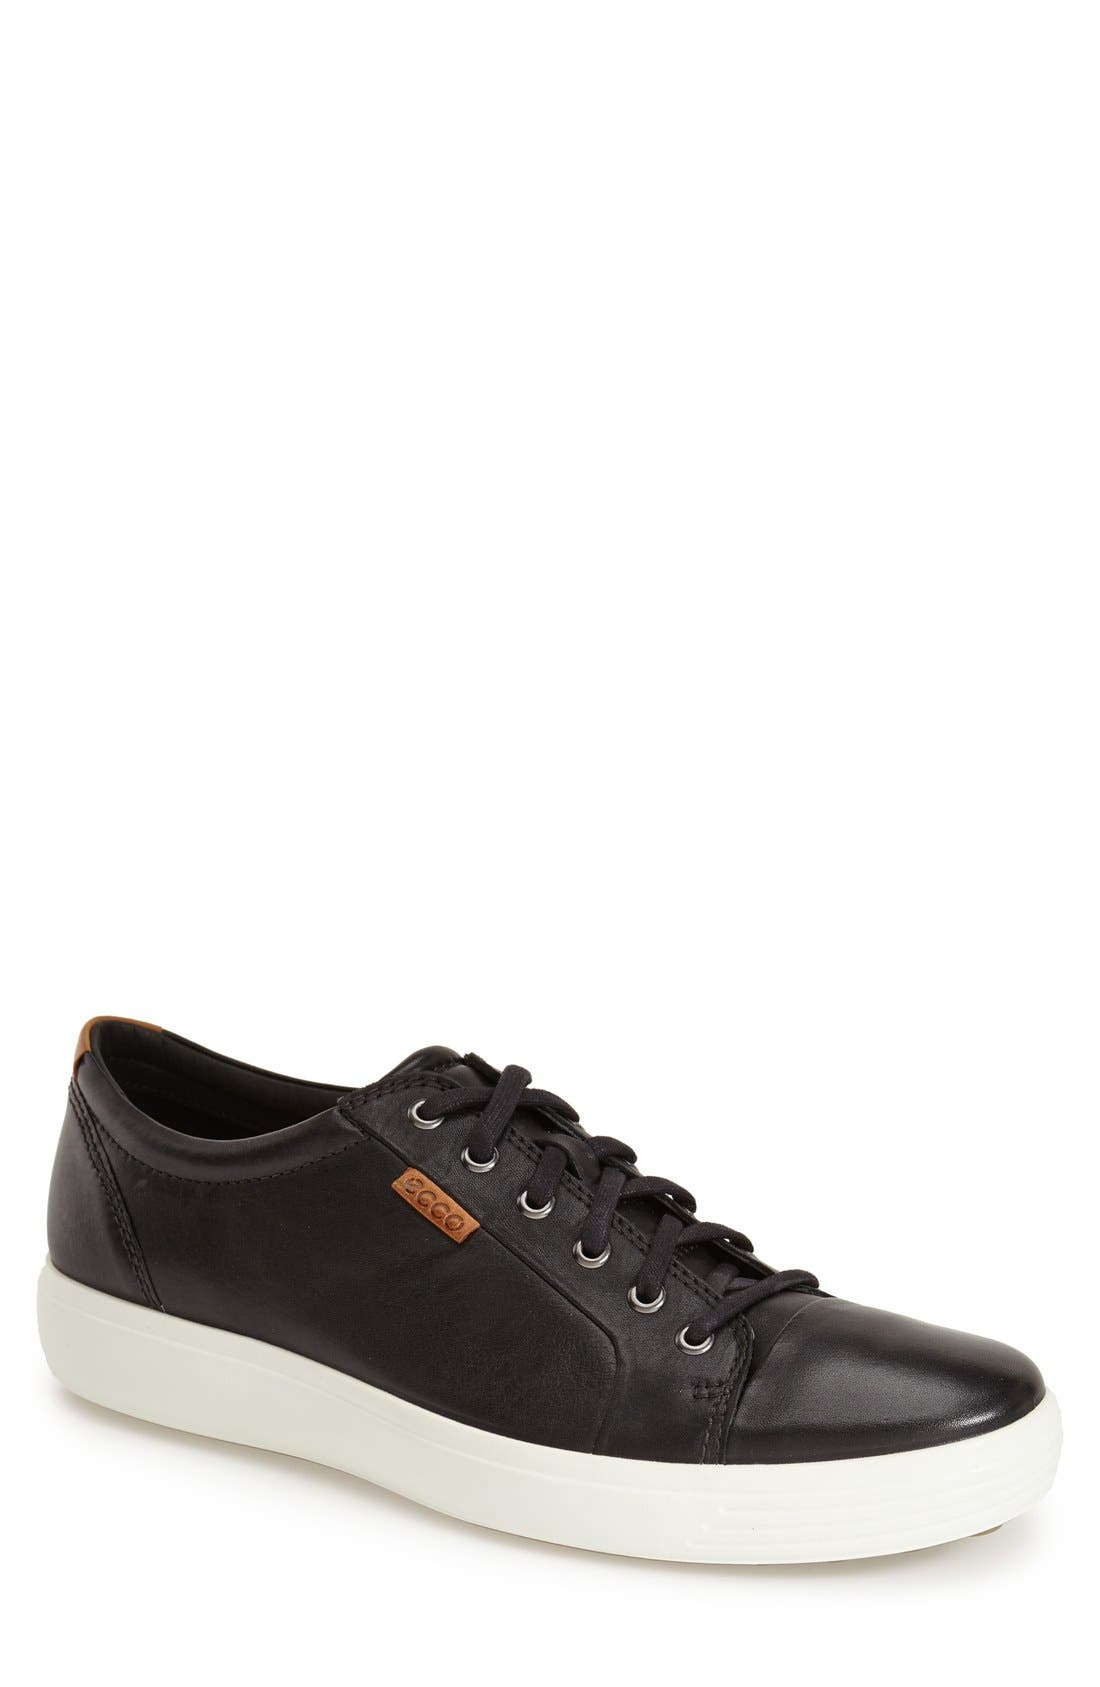 Soft VII Lace-Up Sneaker,                         Main,                         color, Black Leather